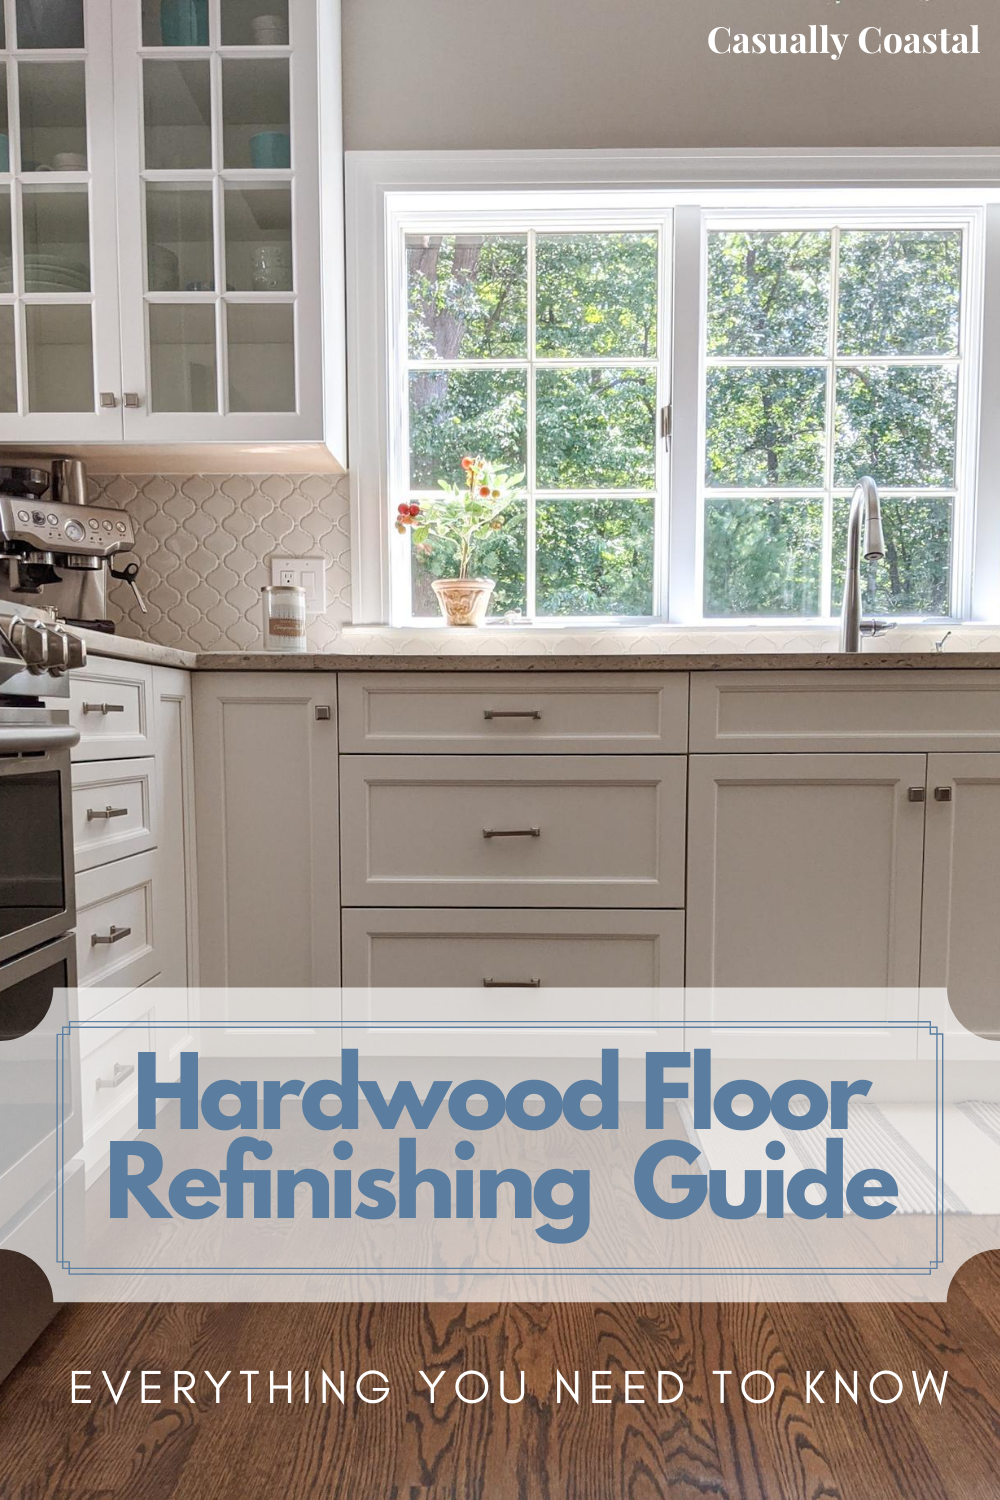 Hardwood Floor Refinishing Guide: Everything You Need To Know